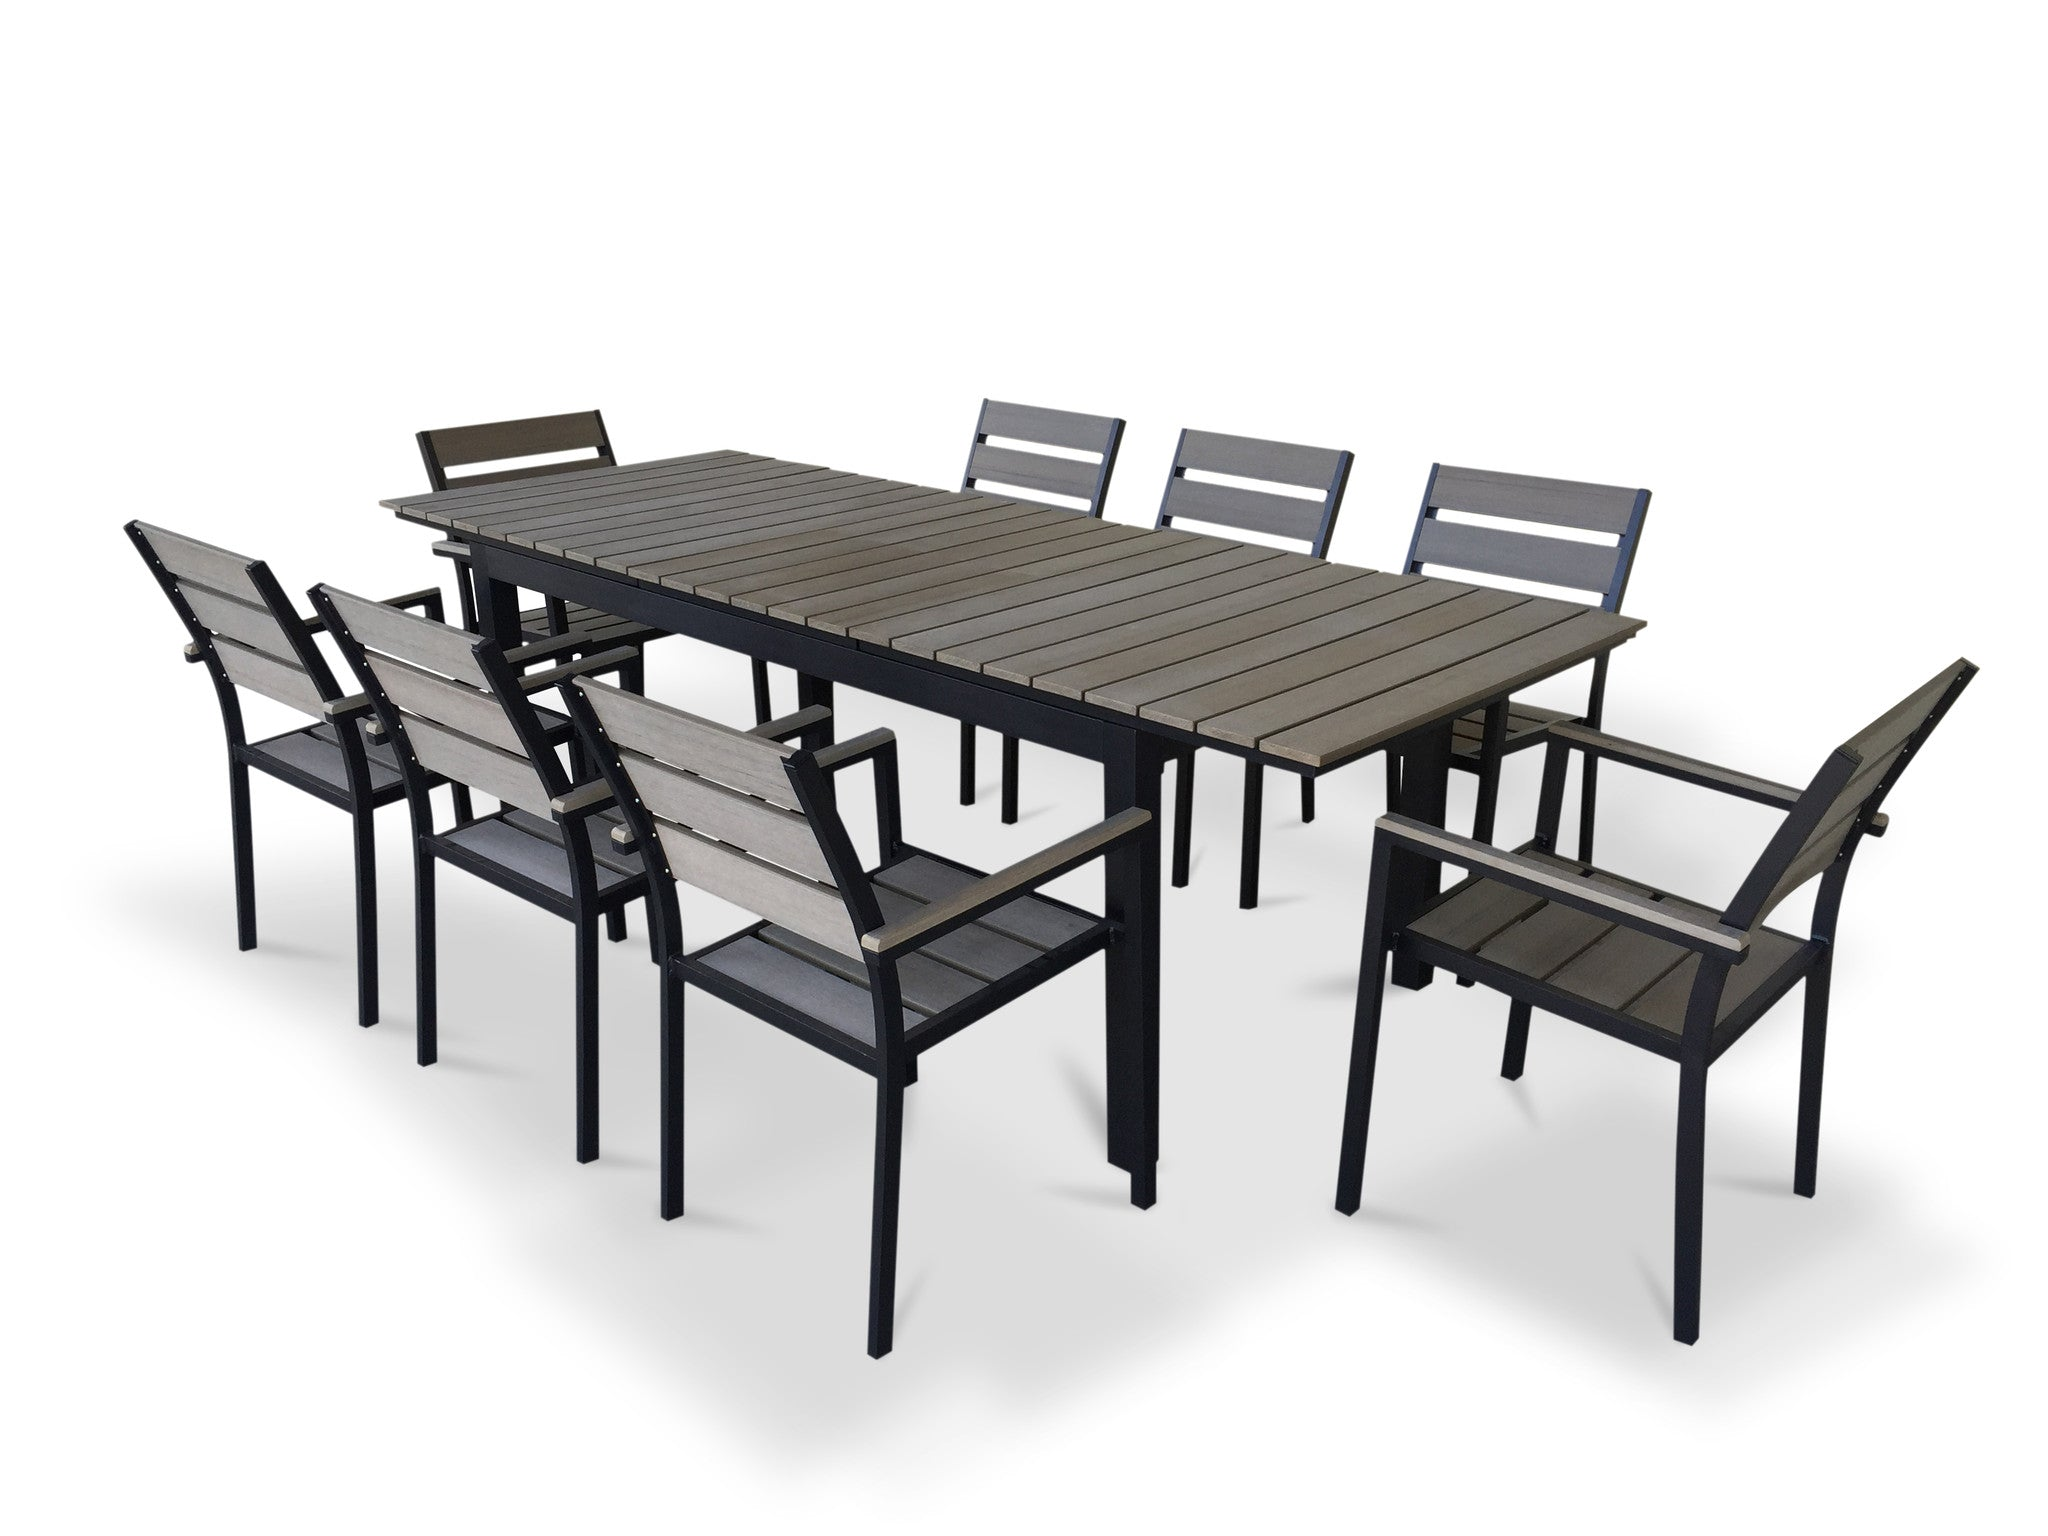 9 Piece Eco Wood Extendable Outdoor Patio Dining Set   Rustic Gray9 Piece Eco Wood Extendable Outdoor Patio Dining Set   Rustic Gray  . Extendable Outdoor Dining Sets. Home Design Ideas